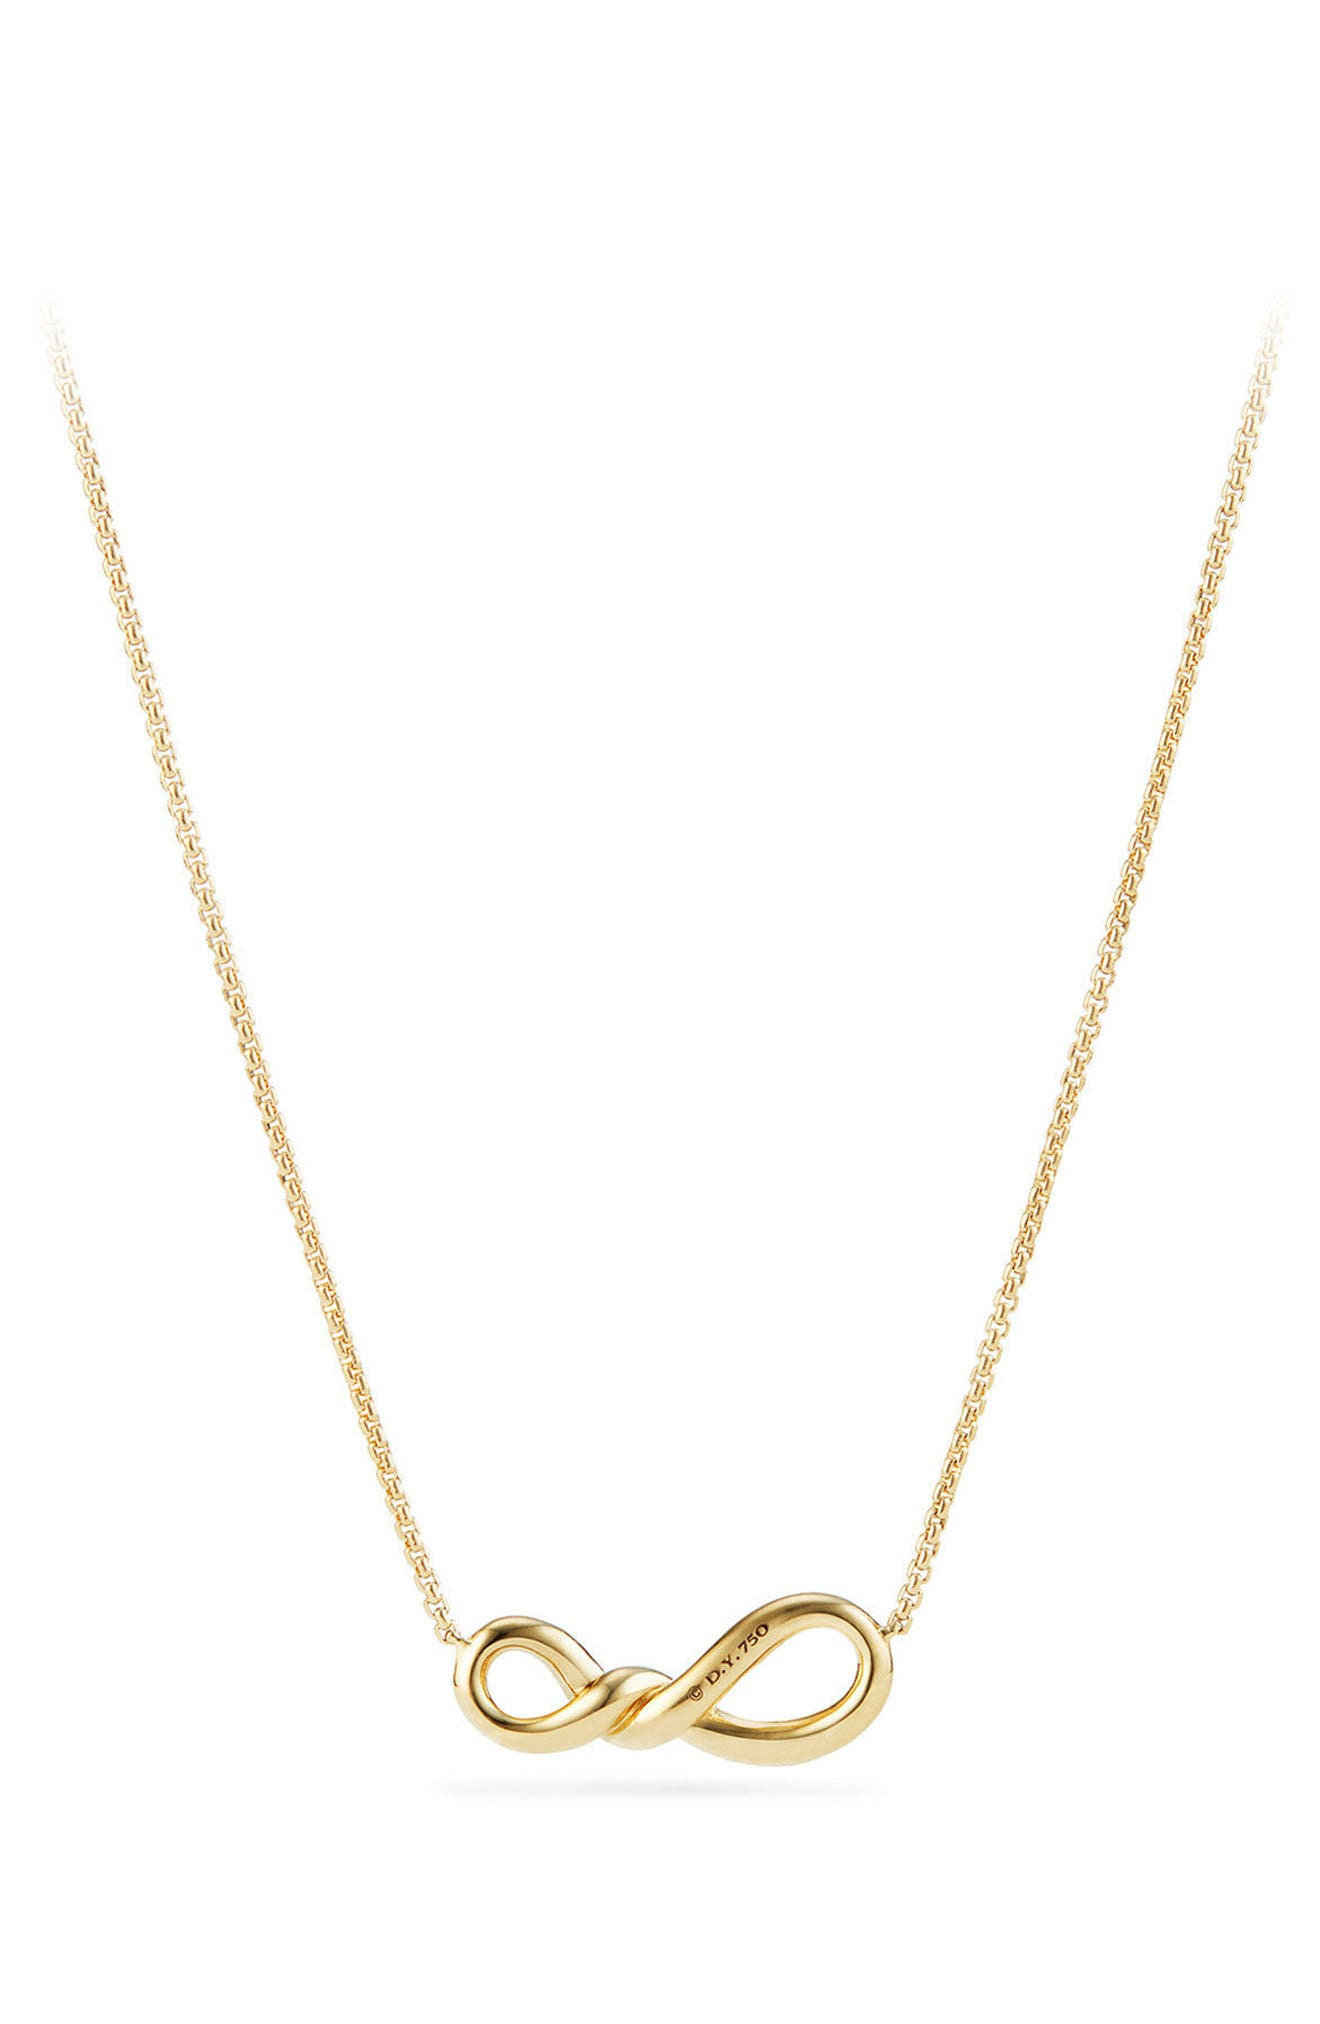 Continuance Pendant Necklace in 18K Gold with Diamonds,                             Alternate thumbnail 3, color,                             YELLOW GOLD